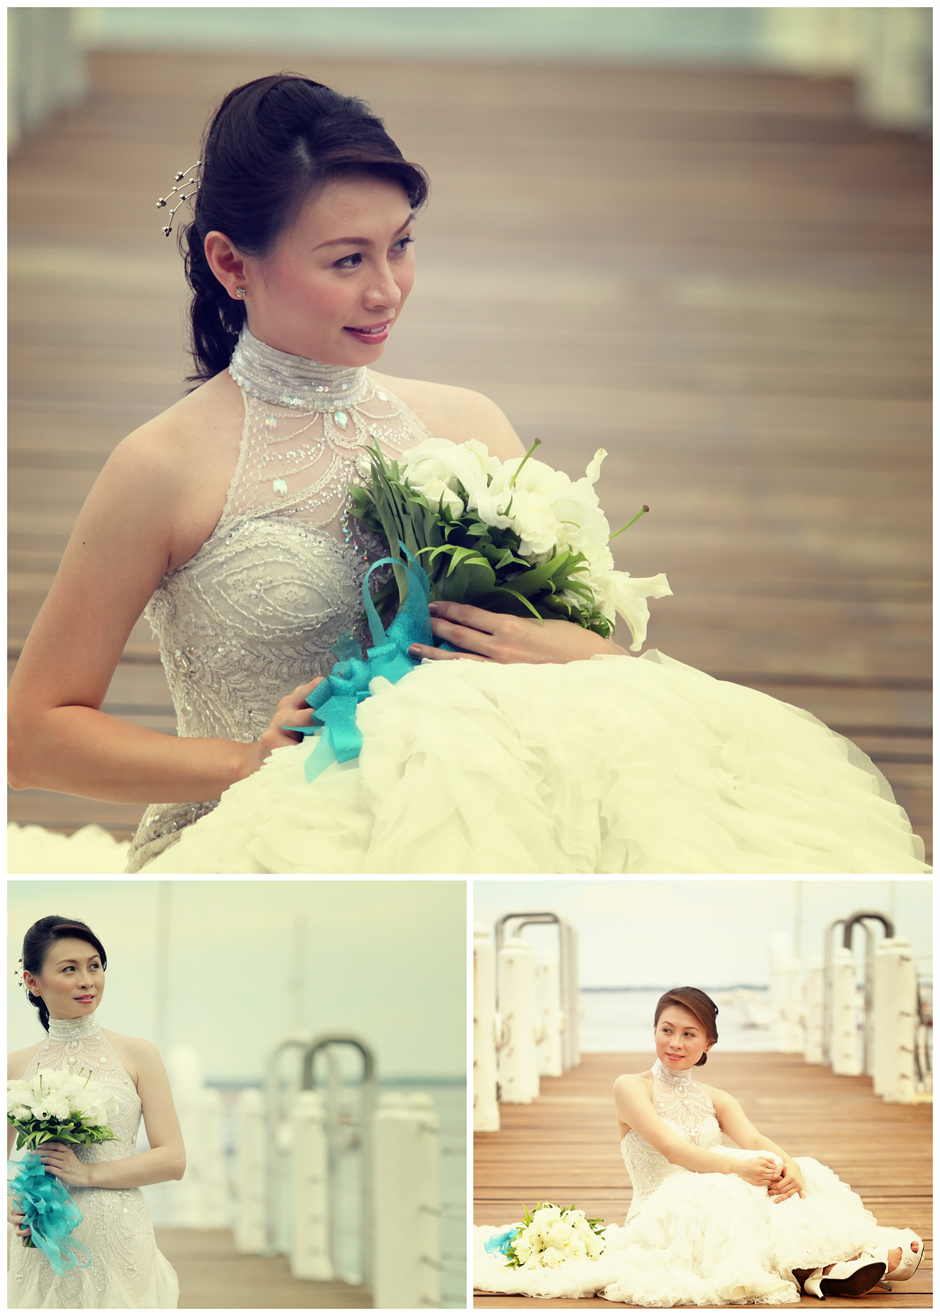 Cebu Weddings, Cebu Wedding Photographer, destination wedding photographer, Wedding Photographer Cebu Philippines